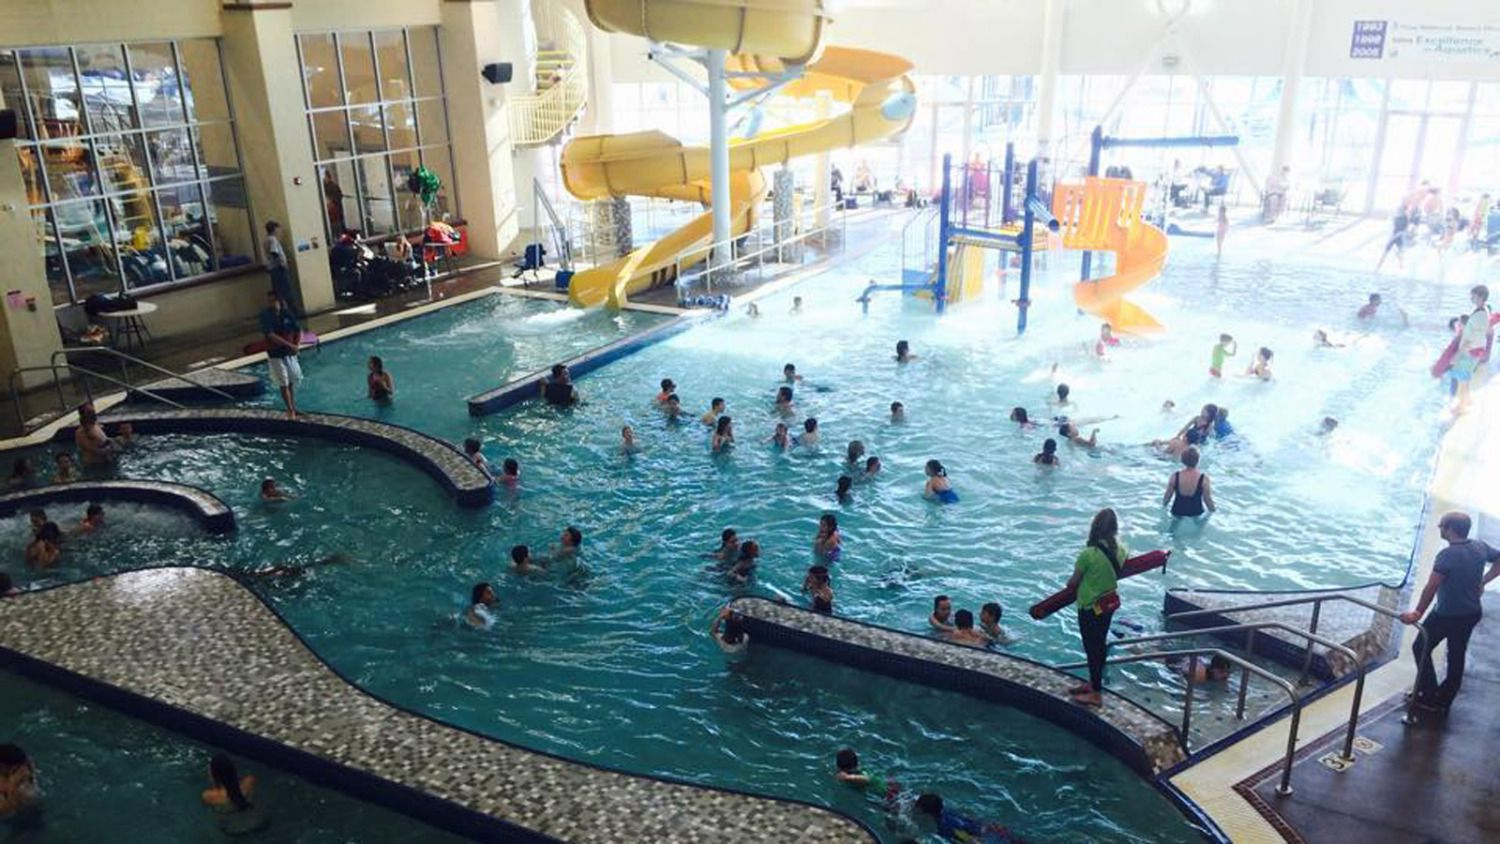 Weather In Spring Can Be Very Unpredictable So An Indoor Water Park Is The Perfect Way To Enjoy